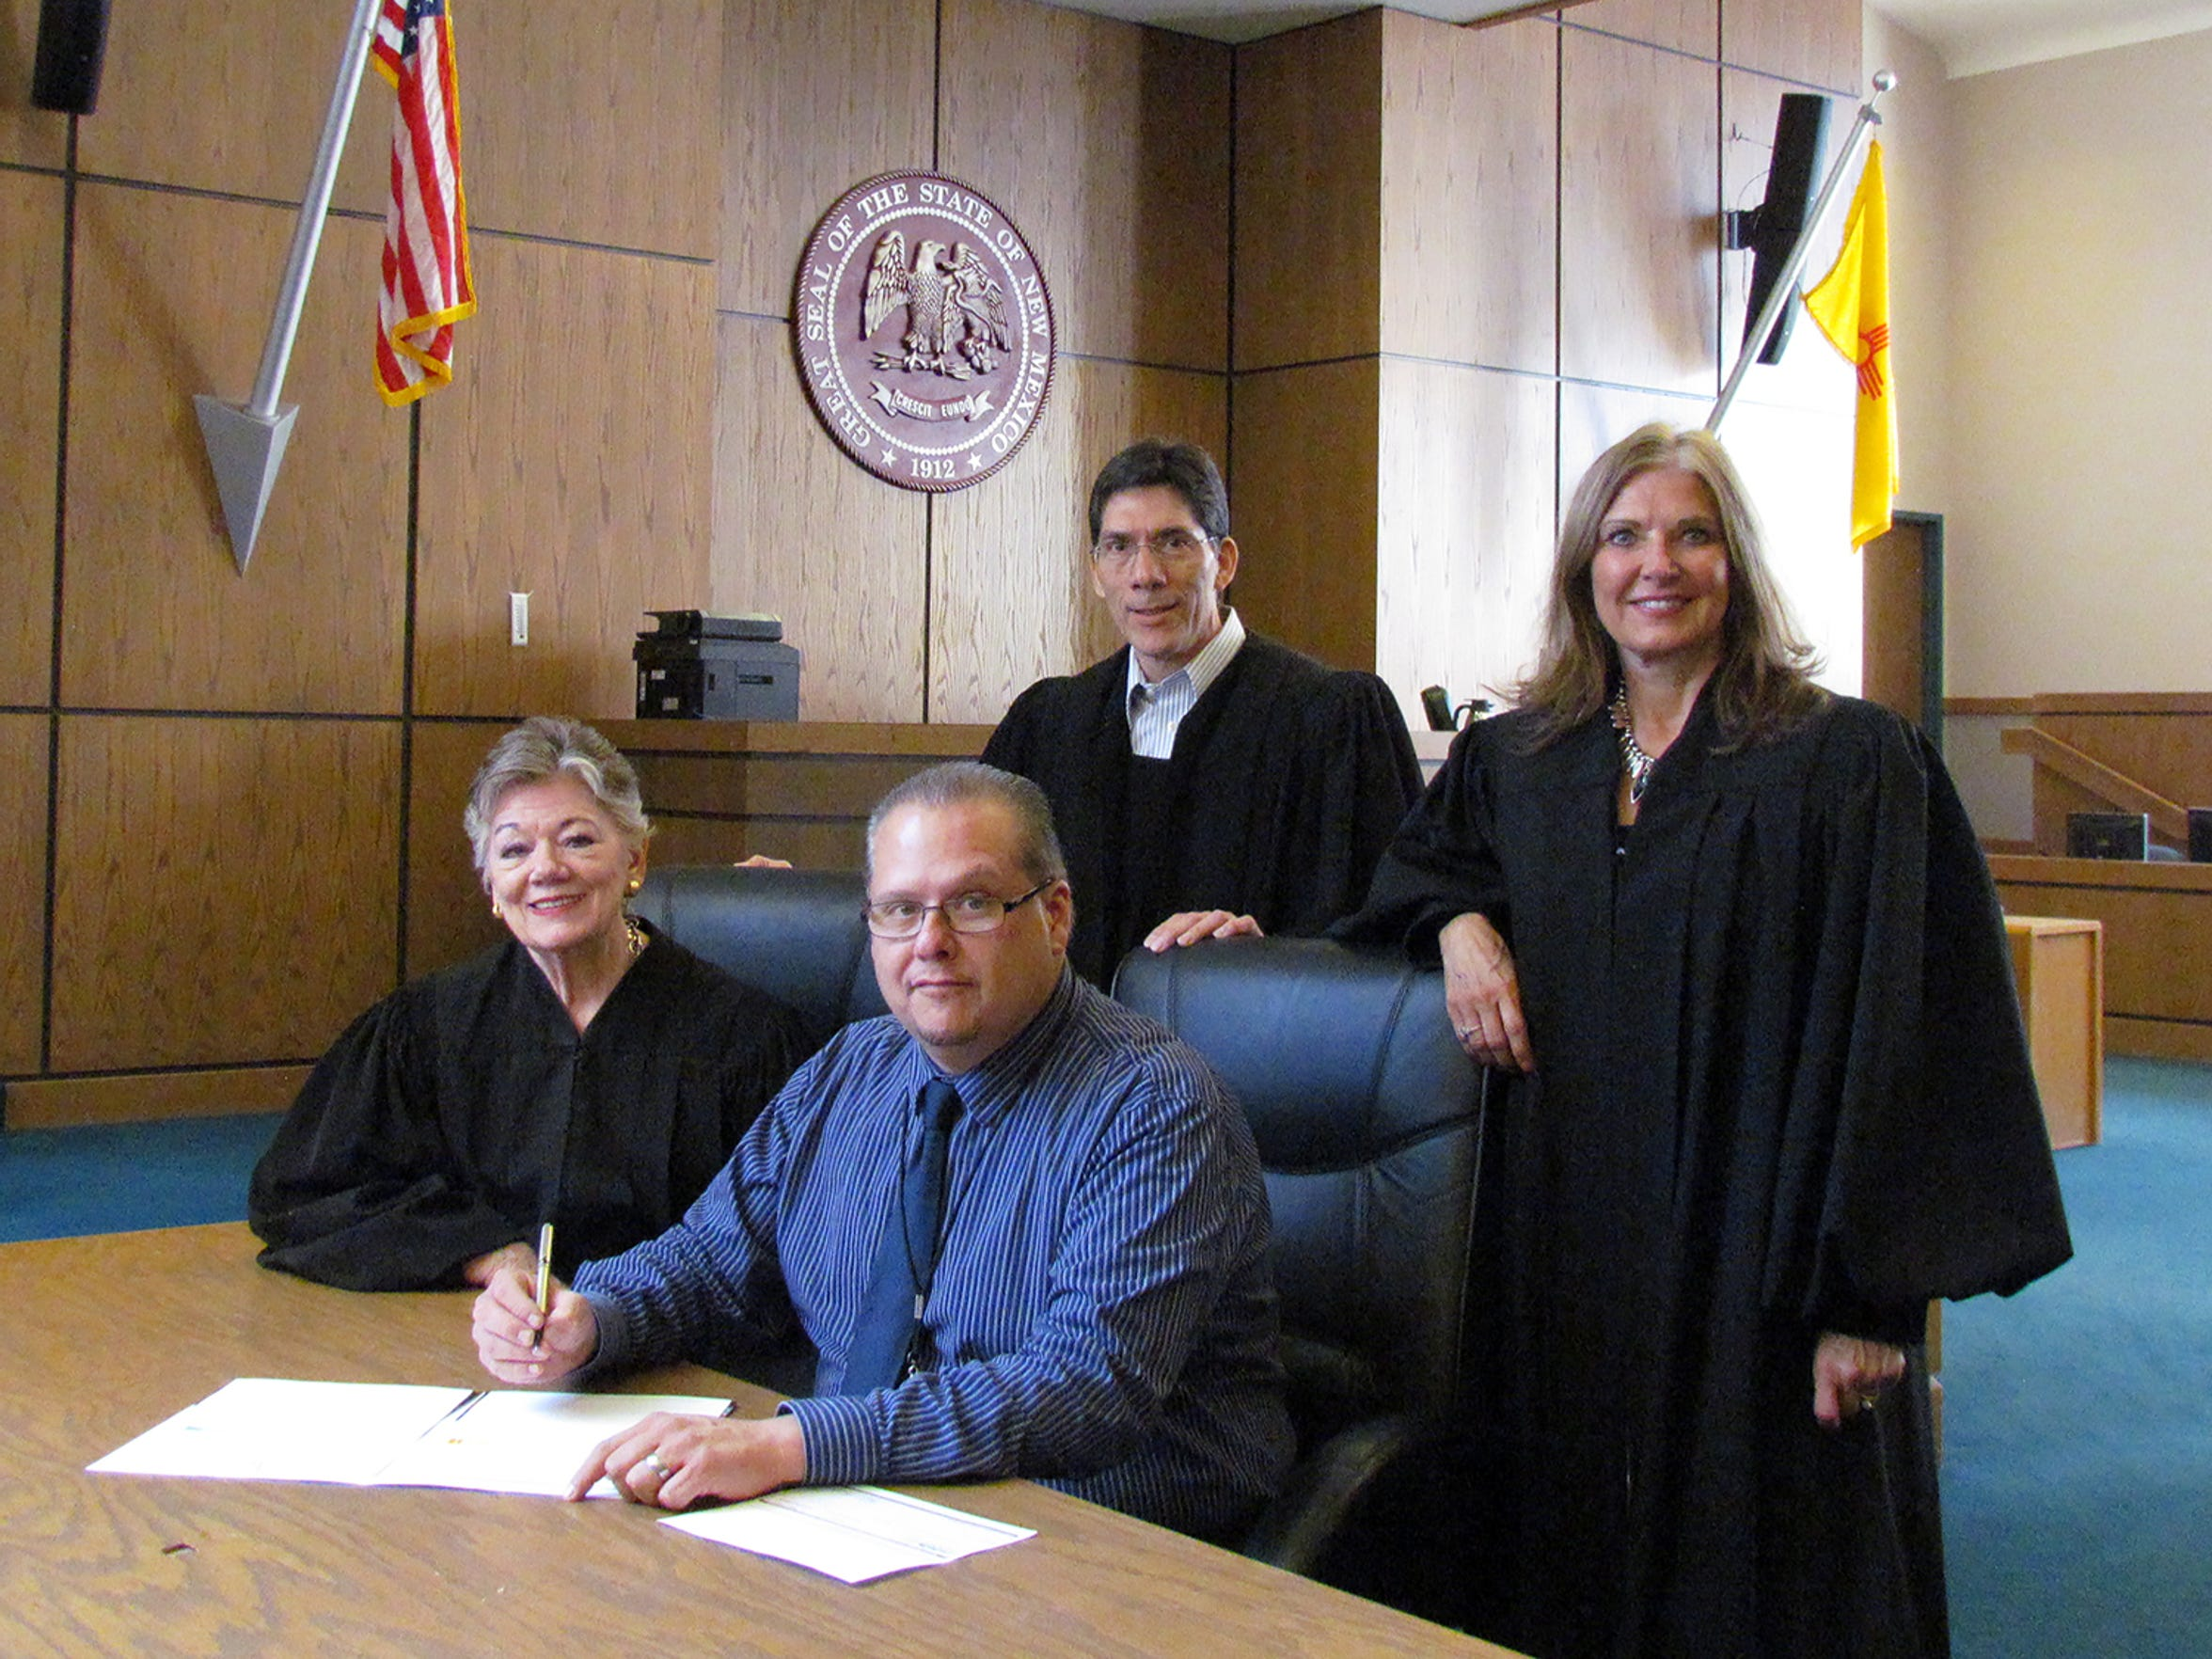 Adult Drug Court Program Manager David Borunda and Drug Court Judges seated: Judge Mary W. Rosner, from left standing Judge Manuel I. Arrieta and Judge Marcy E. Beyer. If Rosner has her way, a mental health court will be established in Doña Ana County by 2021.